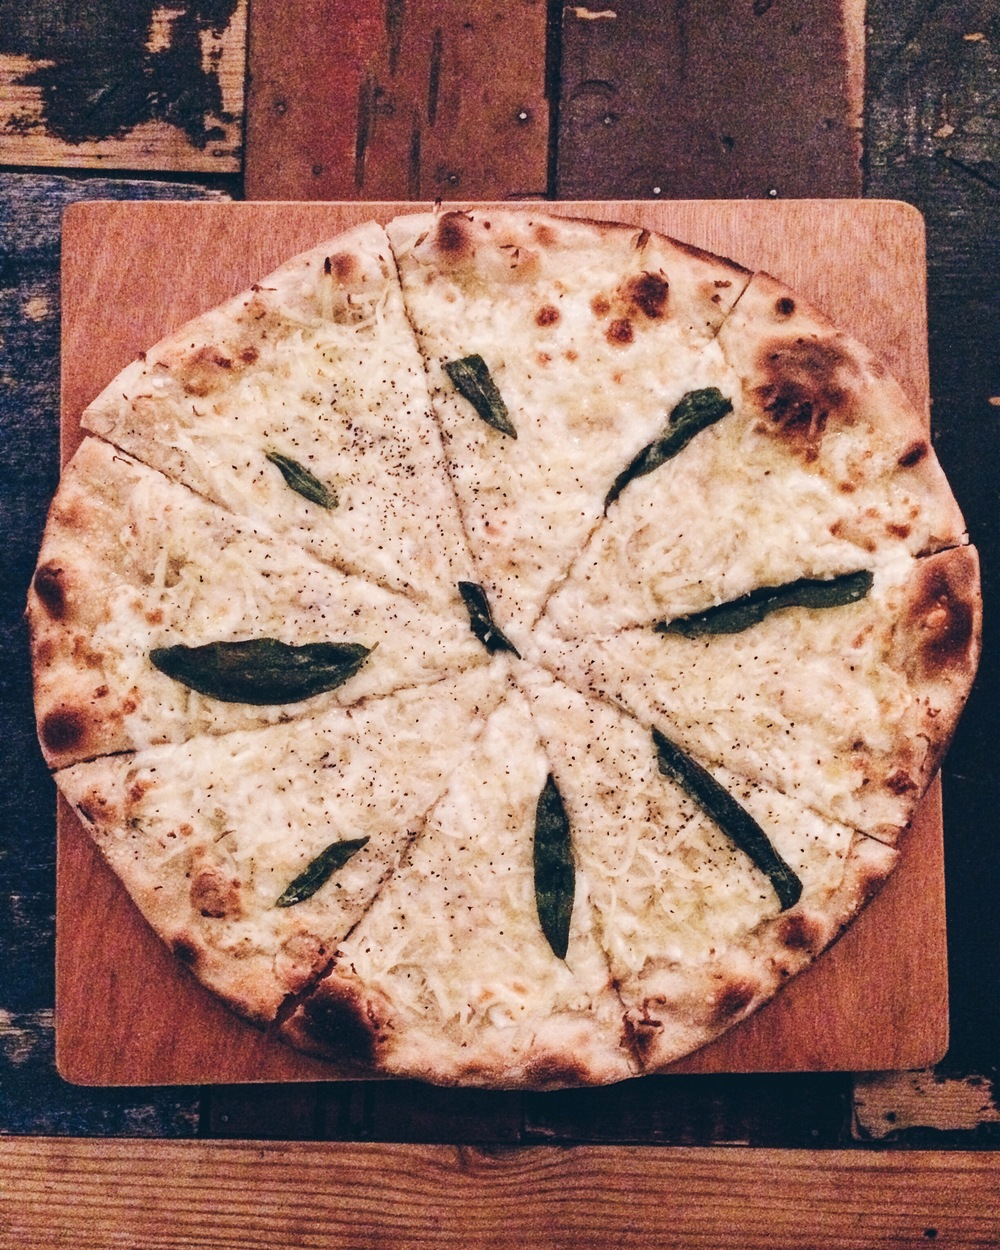 Pizza at Crate Brewery, London